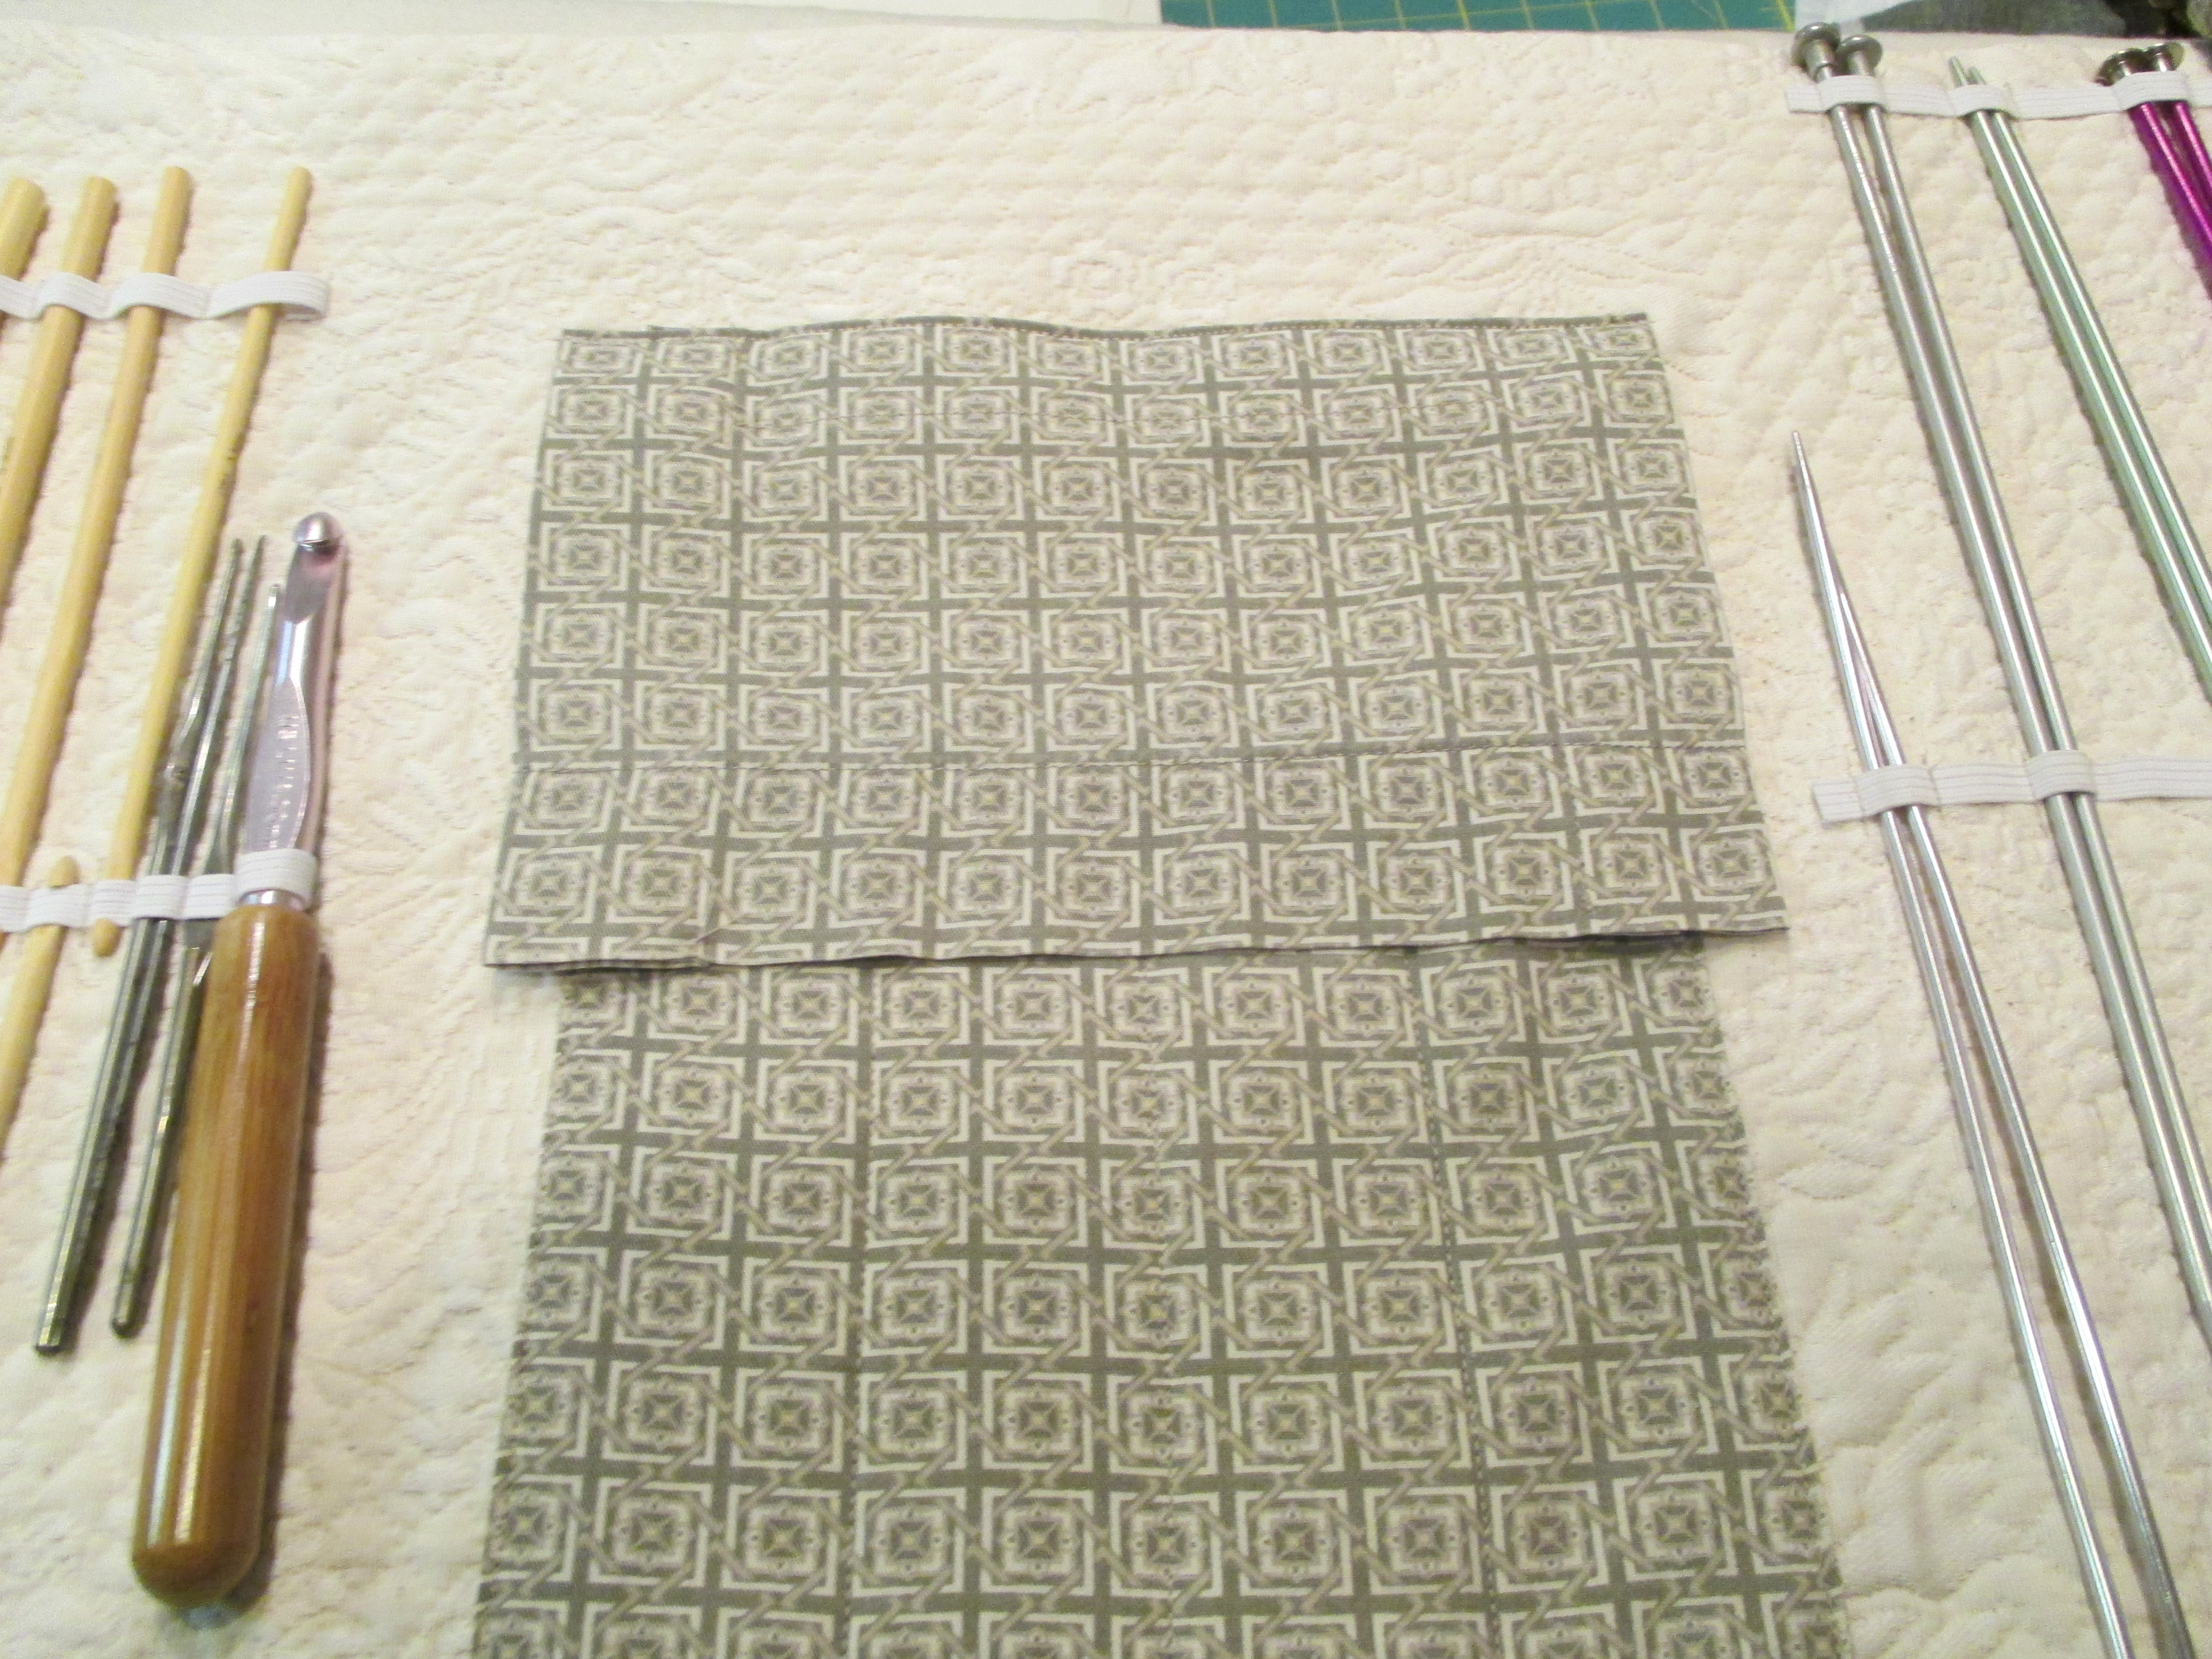 Picture of Flap Pockets for the Double-pointed Needles